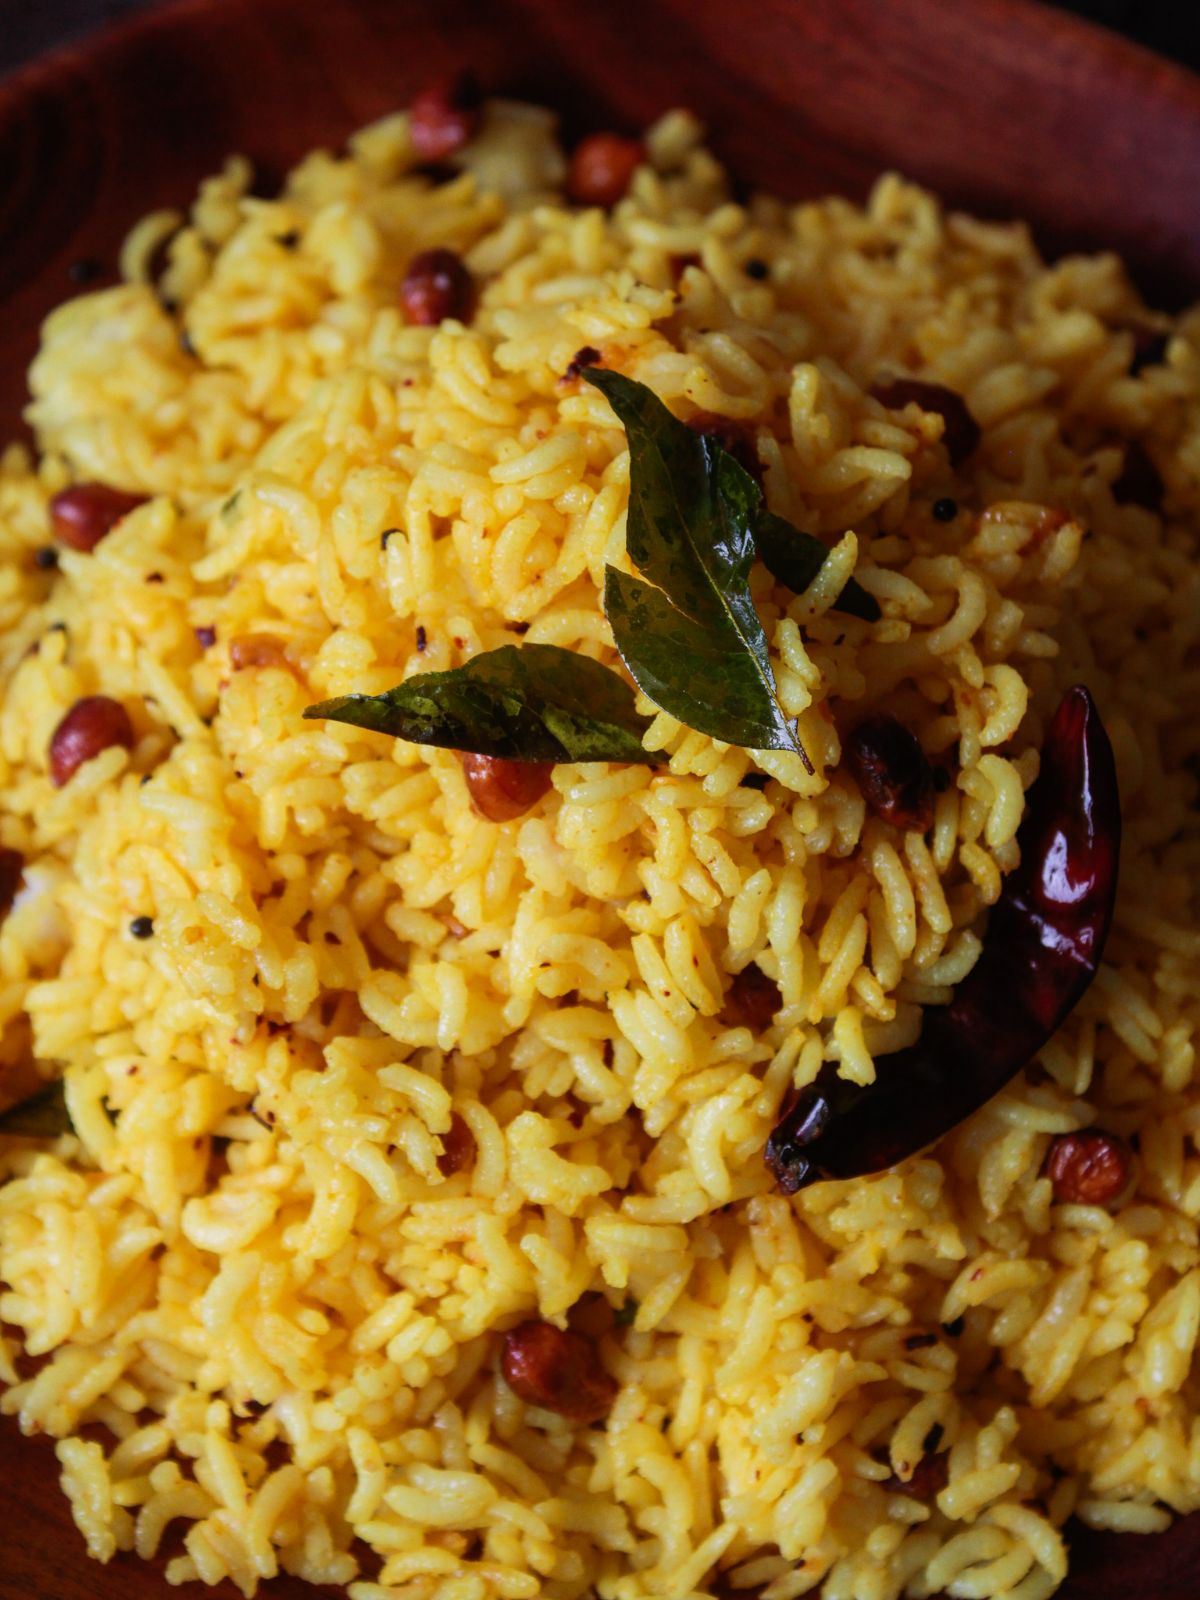 Close up image of bowl of yellow rice with curry leaves red chile and peanuts mixed in